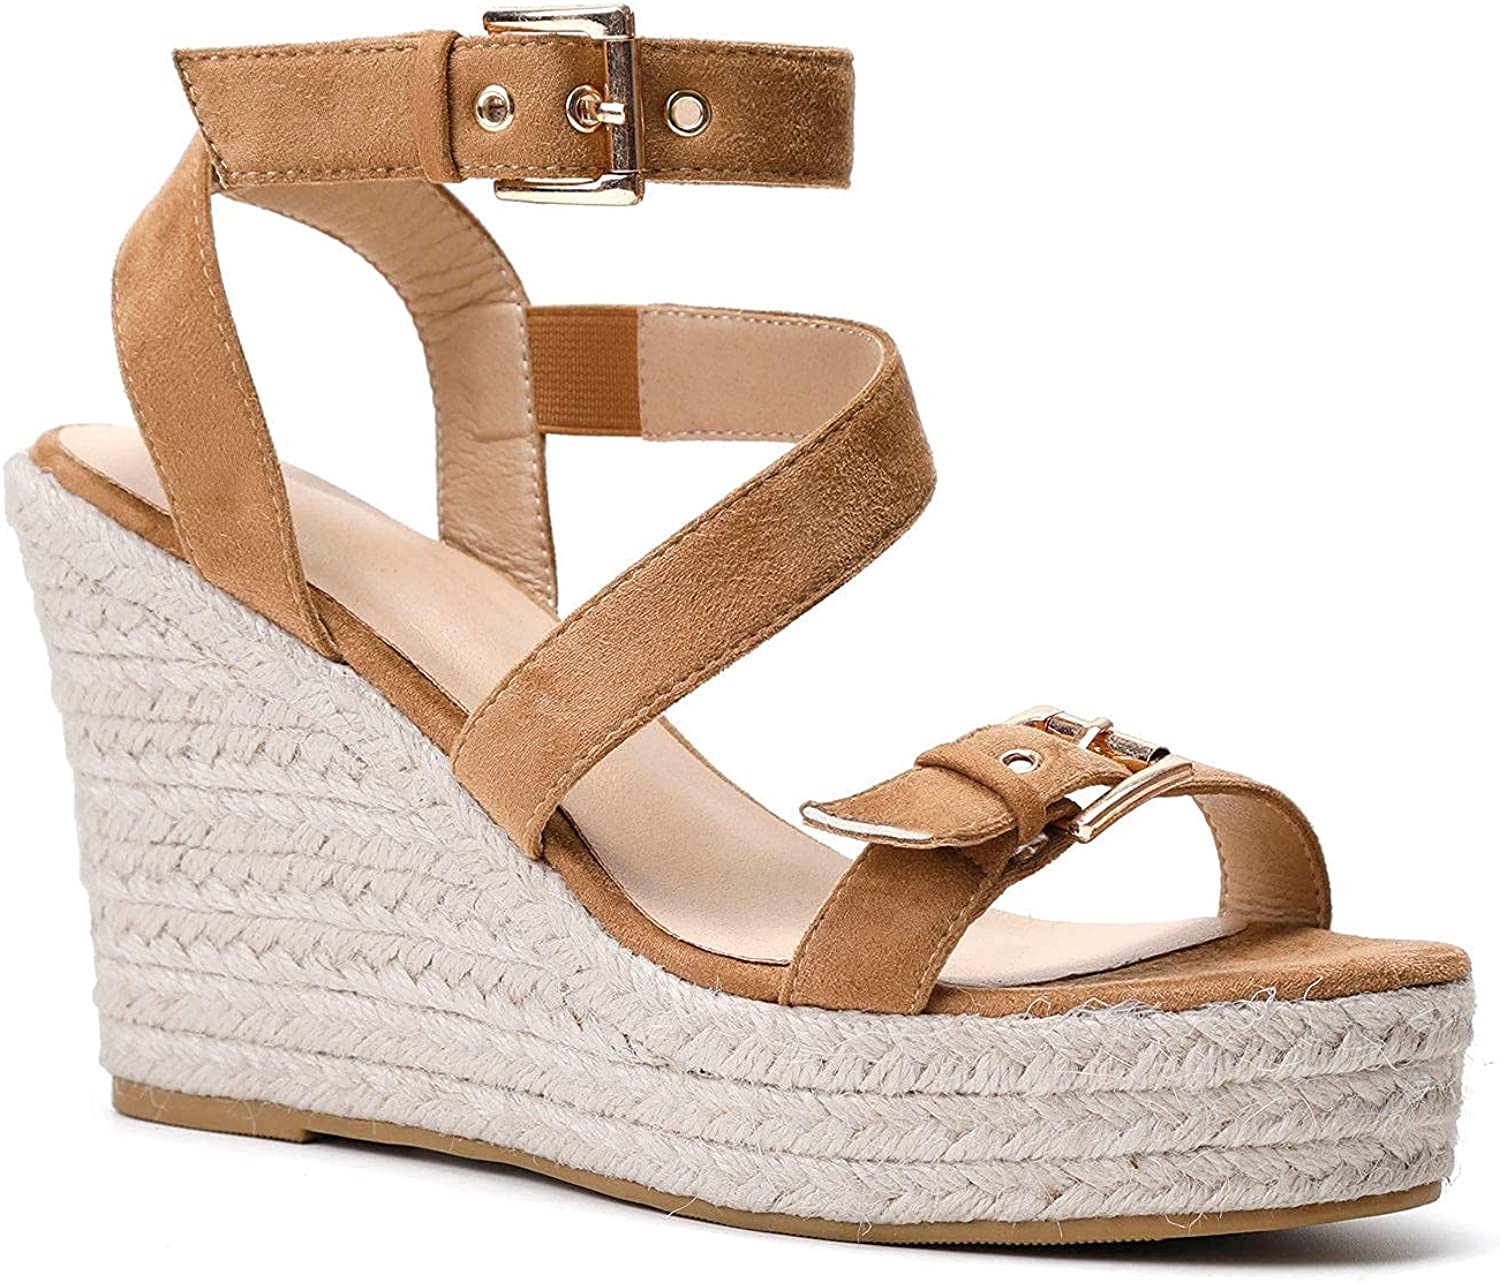 Women'S At the price of surprise Wedge Sandals Waterproof lowest price Strap Platform Ankle Adjustable